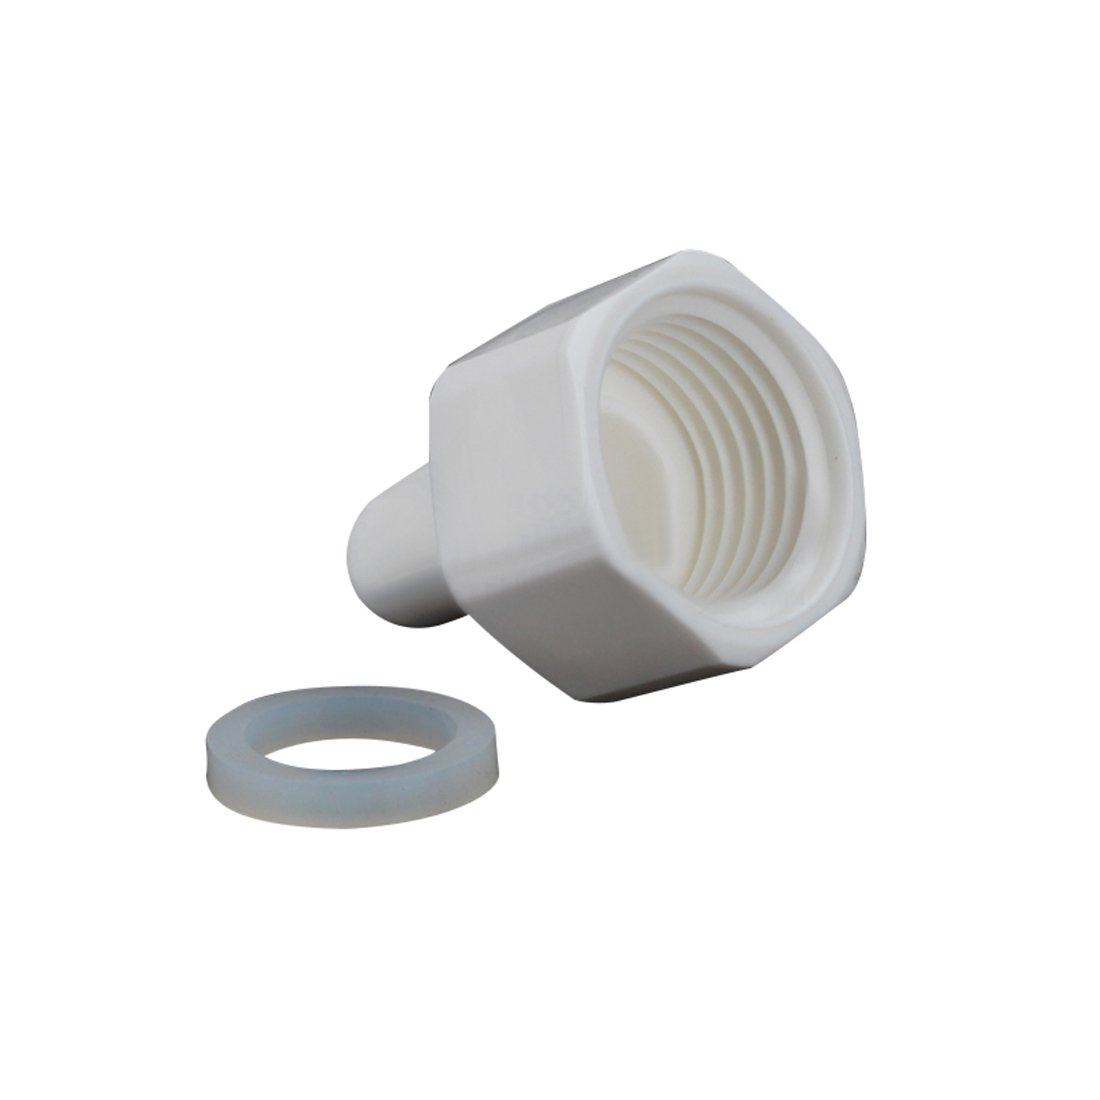 pack of 5 Meiduoduo Model 1048N Mini White POM Quick Water Fittings 1//2 Female NPT Thread to 1//4 Tube 90 degree elbow push fit quick connector for RO water system